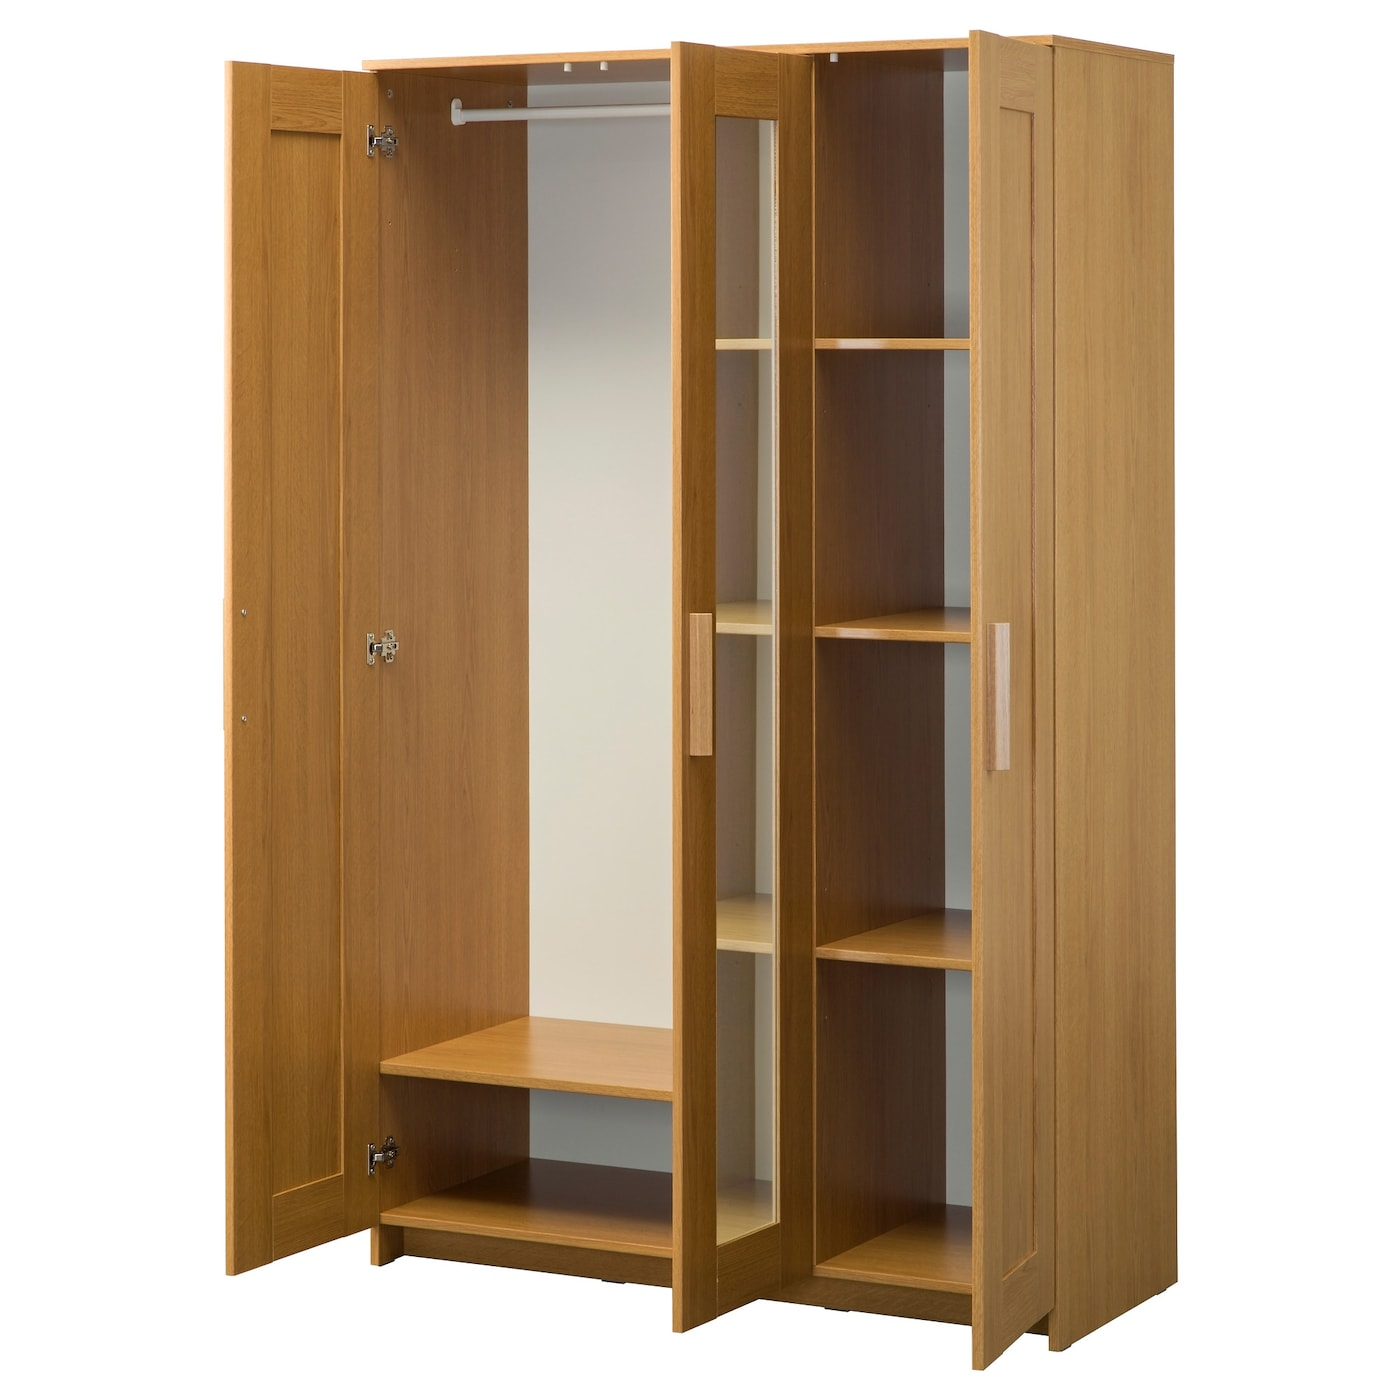 ikea brimnes wardrobe with 3 doors adjustable hinges ensure that the doors hang straight